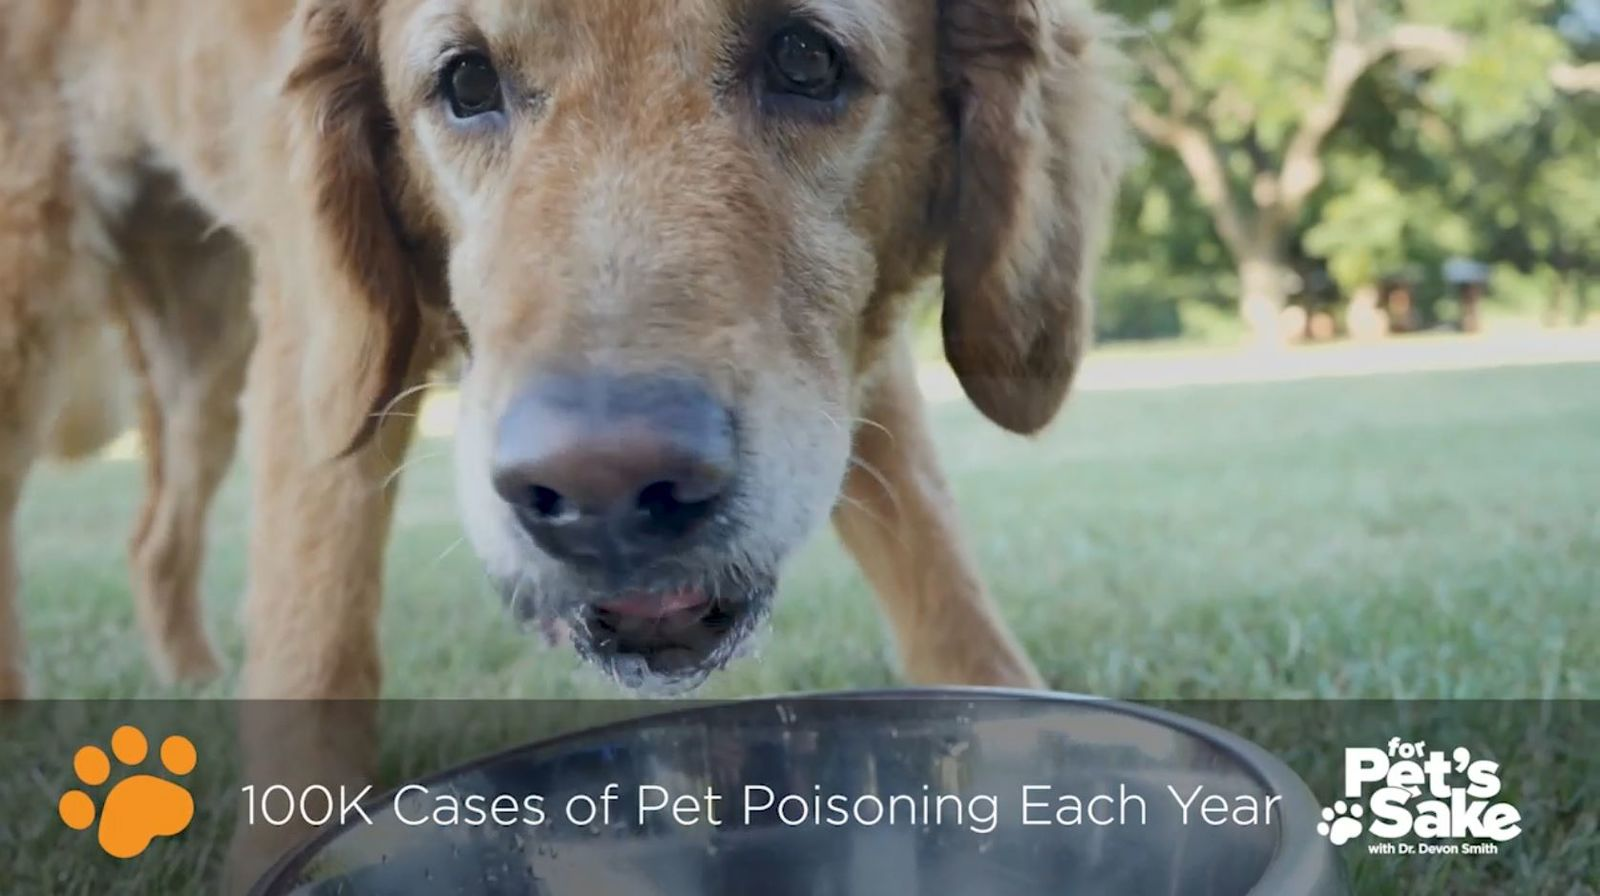 100,000 cased of accidental pet poisoning are reported each year (Sinclair Broadcasting Group)